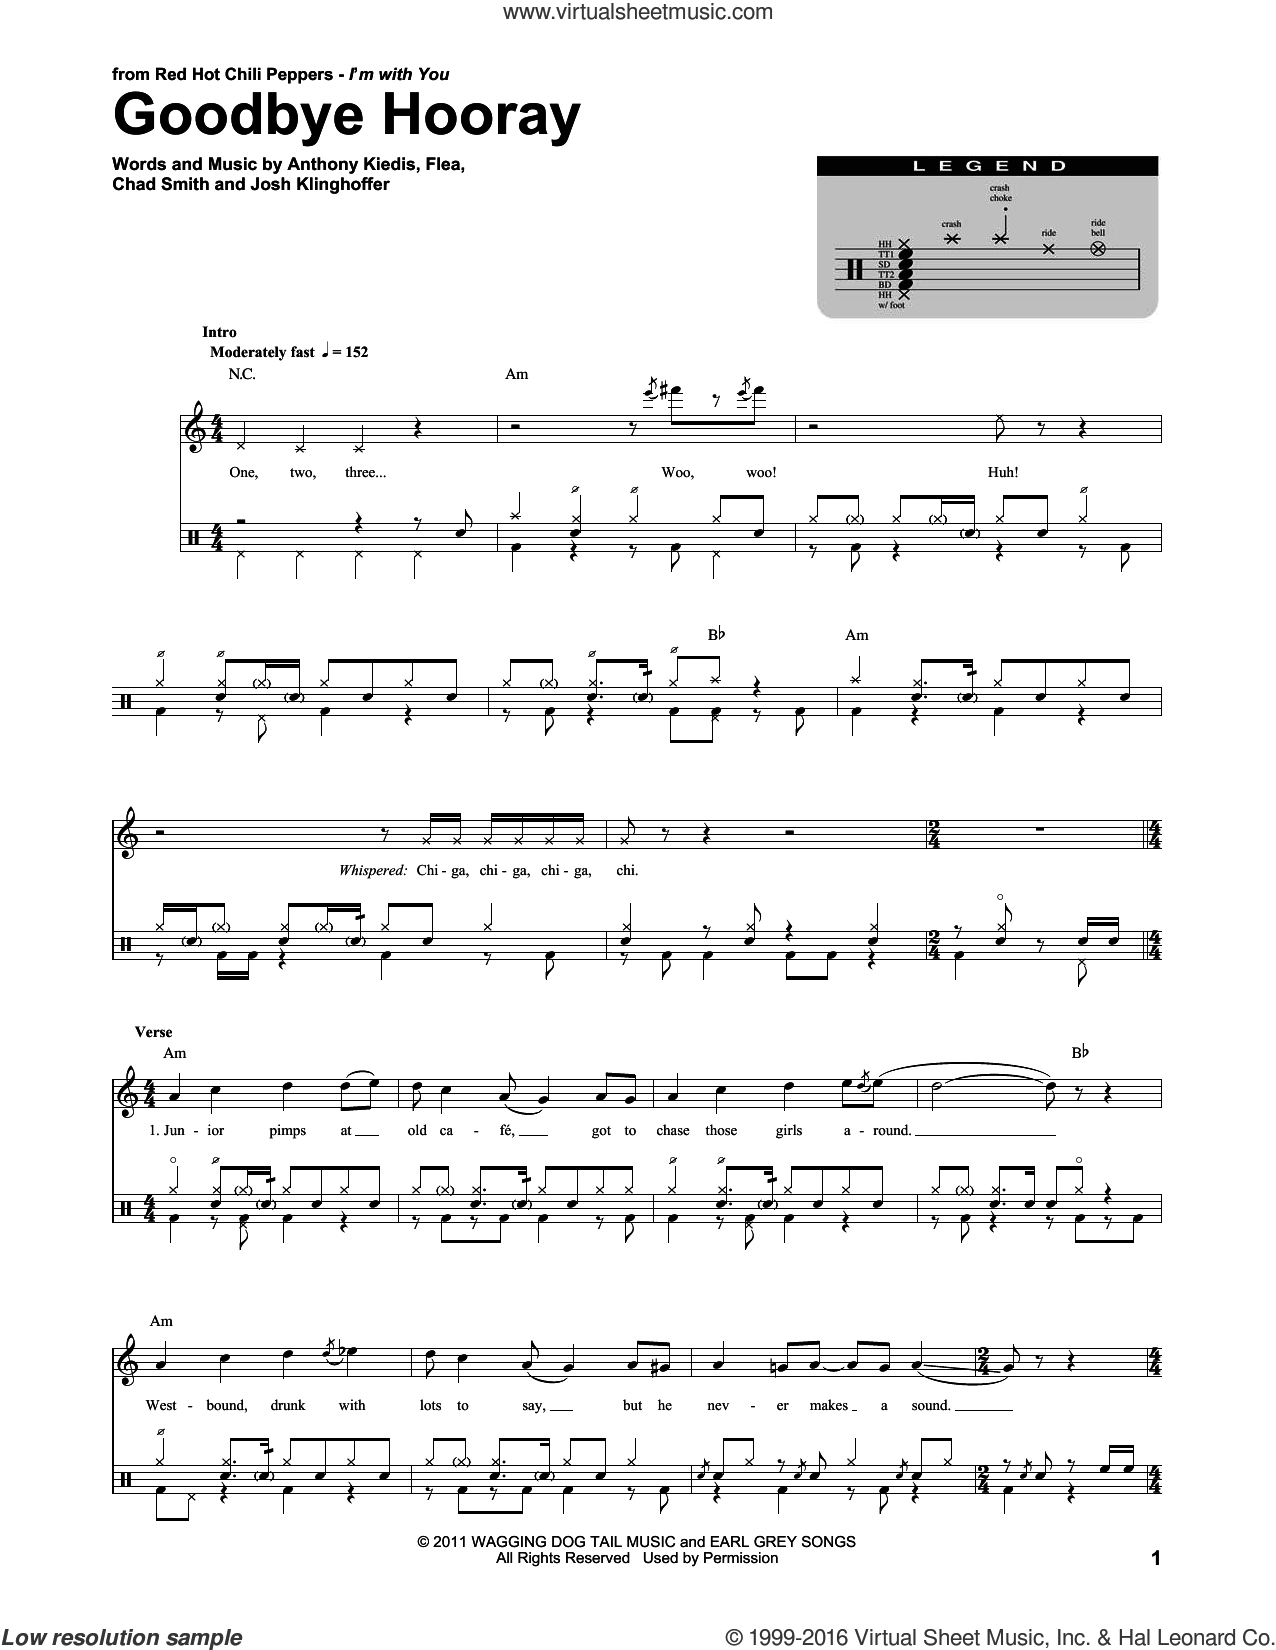 Goodbye Hooray sheet music for drums by Red Hot Chili Peppers, Anthony Kiedis, Chad Smith, Flea and Josh Klinghoffer, intermediate skill level